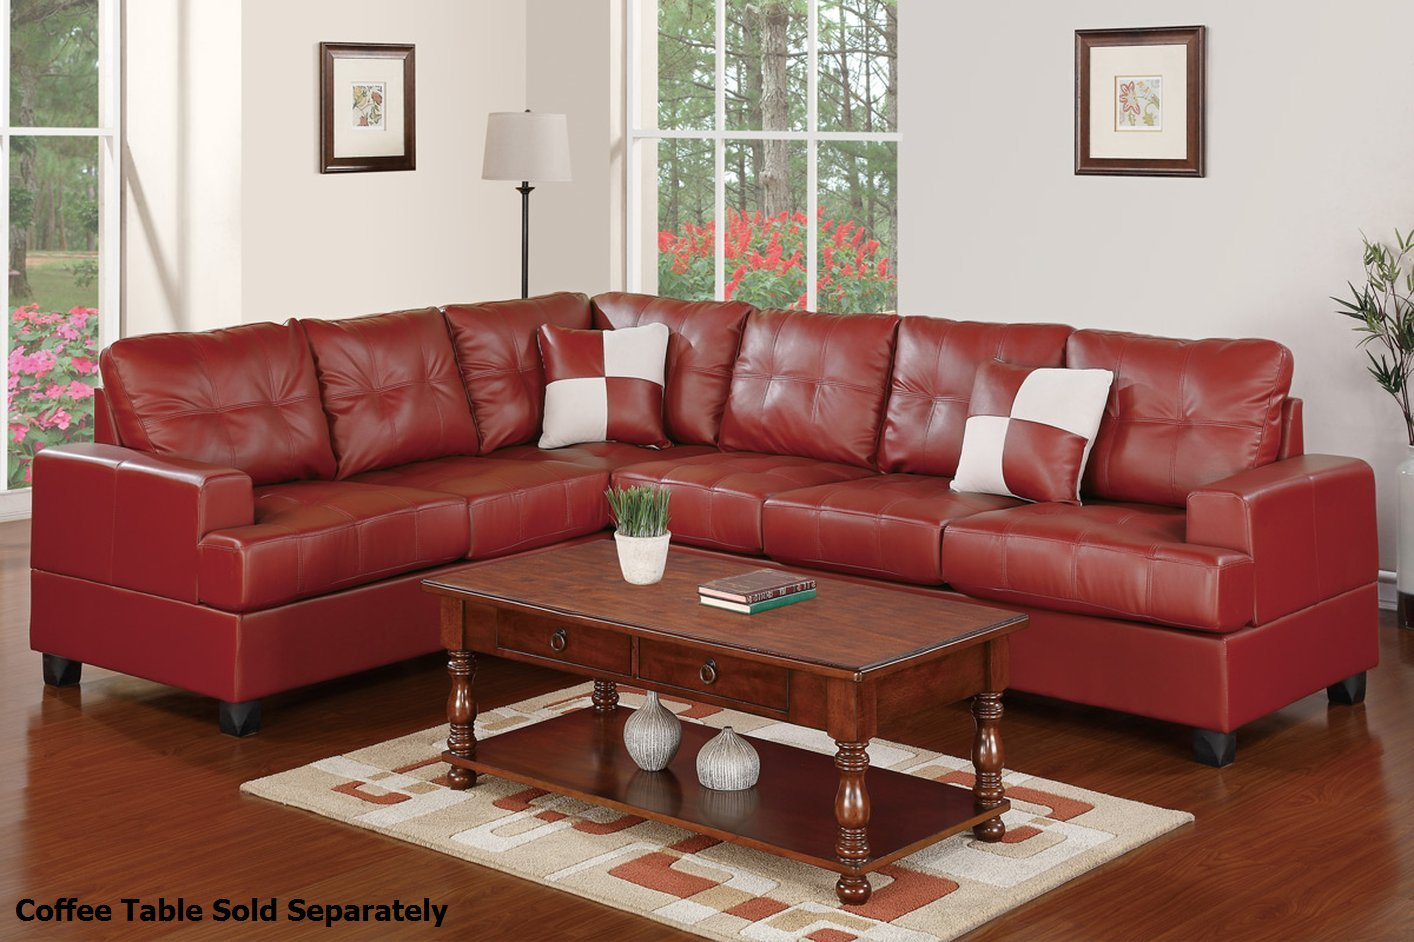 Poundex Pershing F7642 Red Leather Sectional Sofa Steal